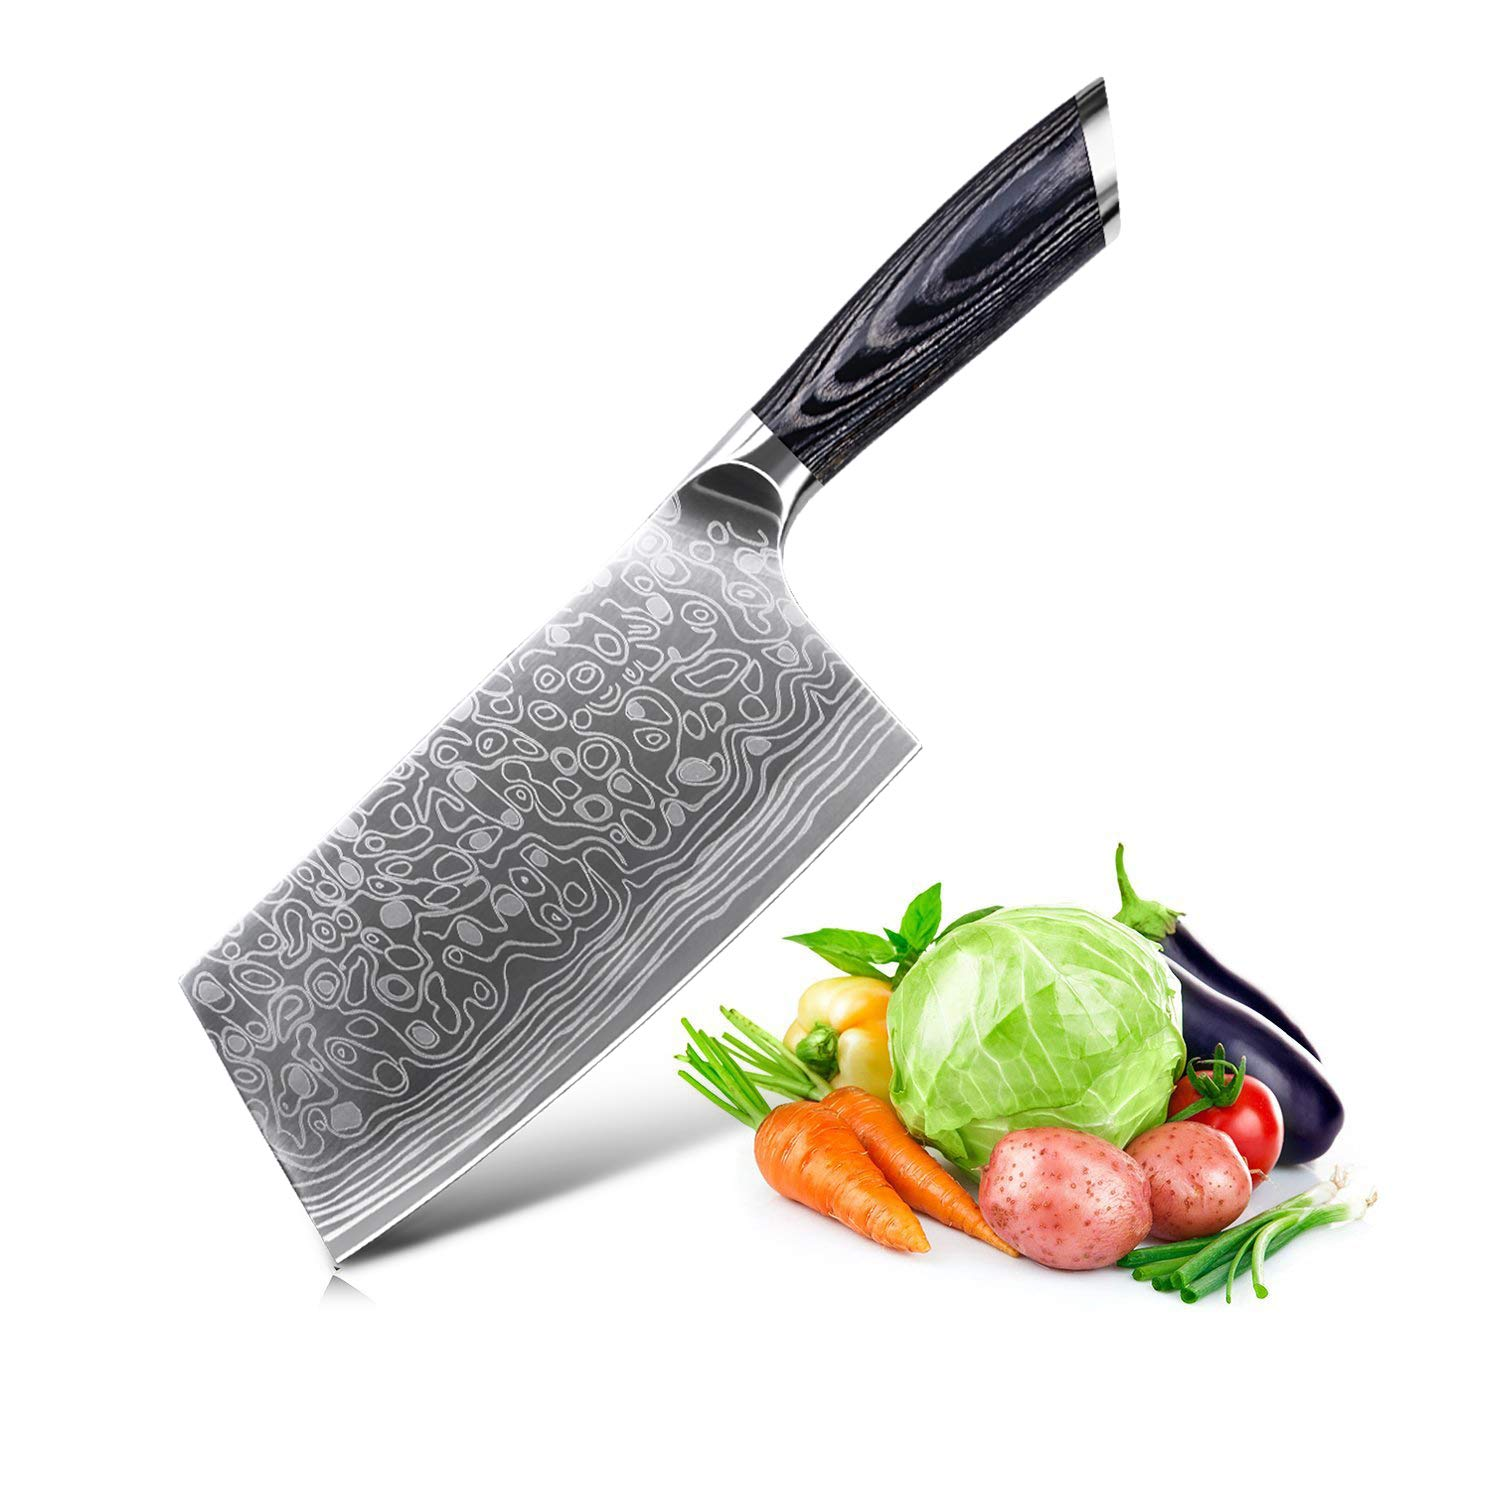 EKUER 7-Inch Chopper Cleaver Butcher Vegetable Knife for Home Kitchen or Restaurant,German High Carbon Stainless Steel with Ergonomic Handle (Style 4)